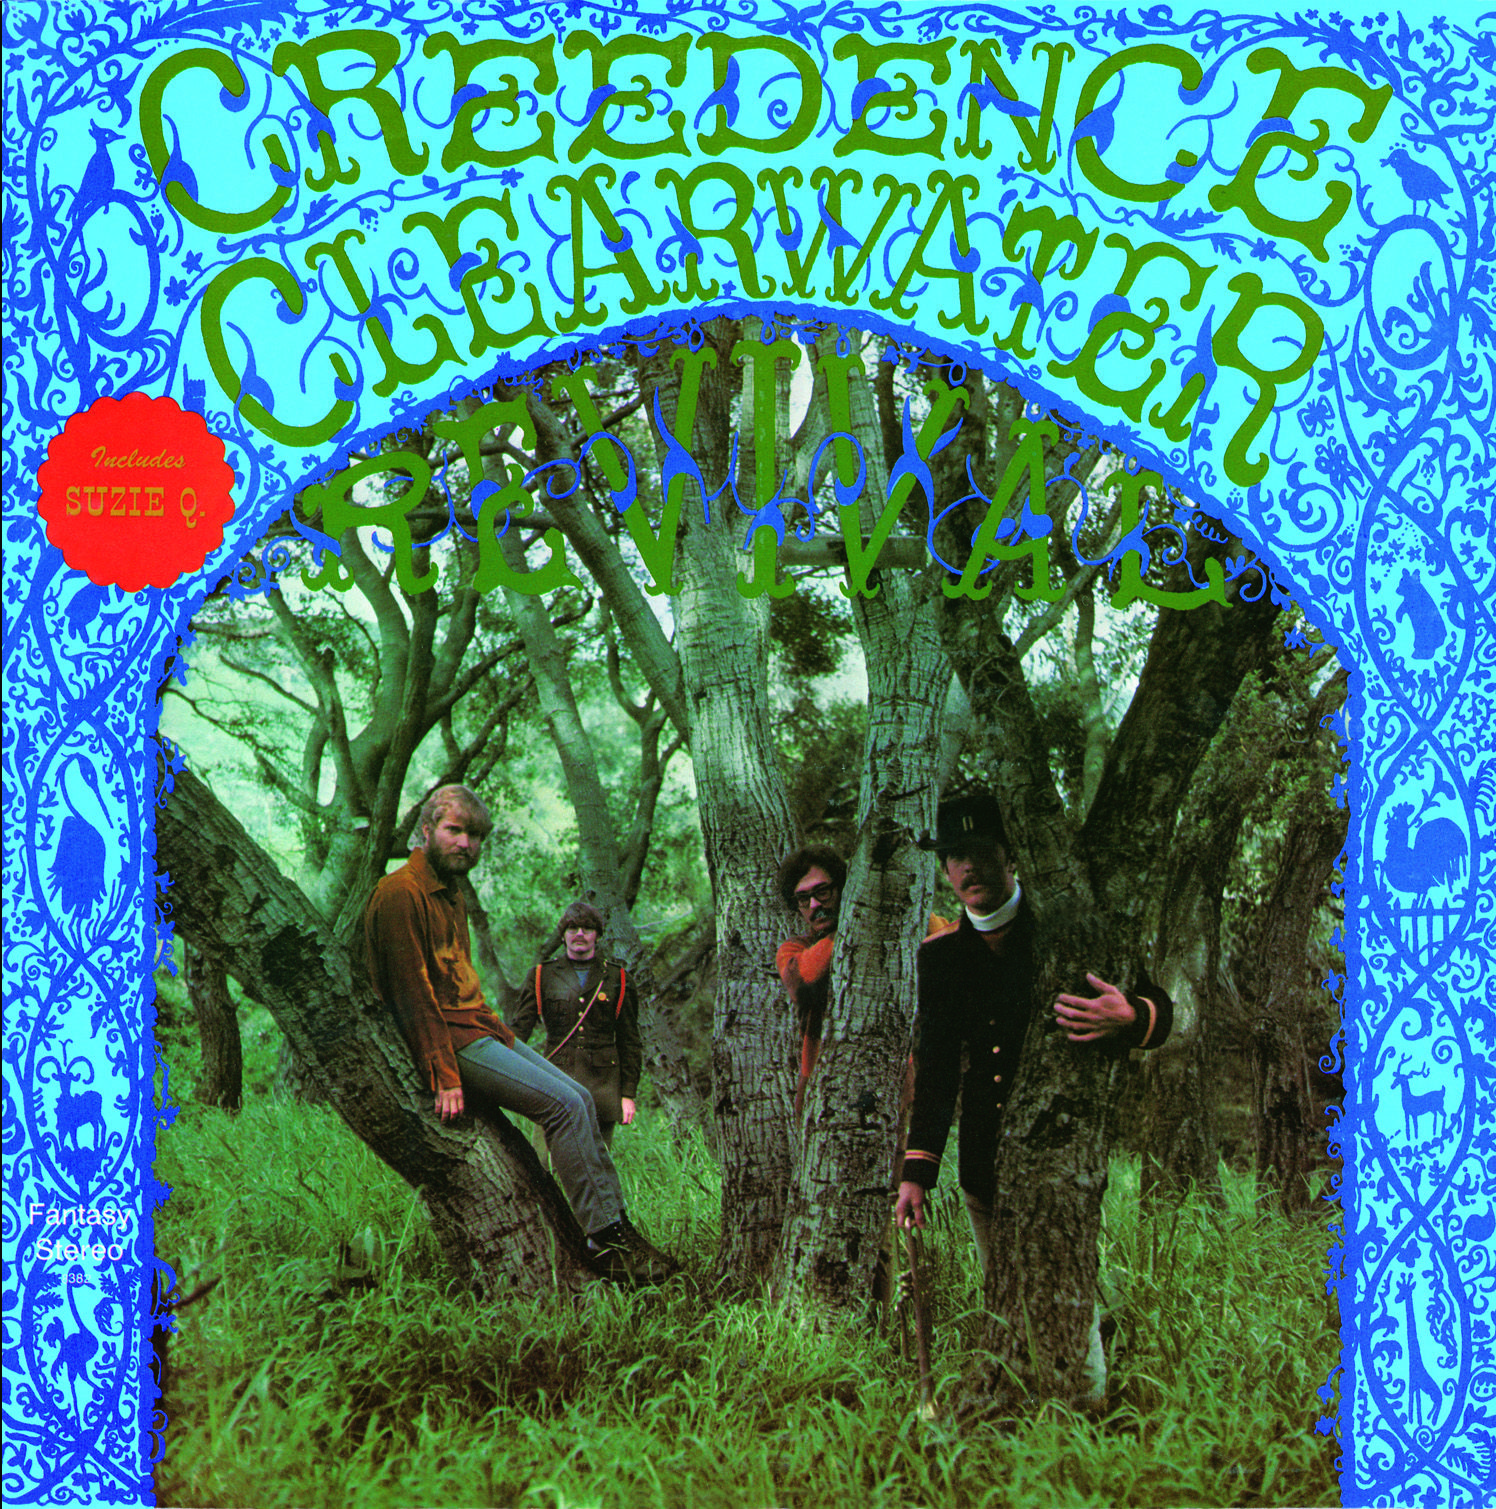 Music from Big Pink — Випуск 14 — Creedence Clearwater Revival